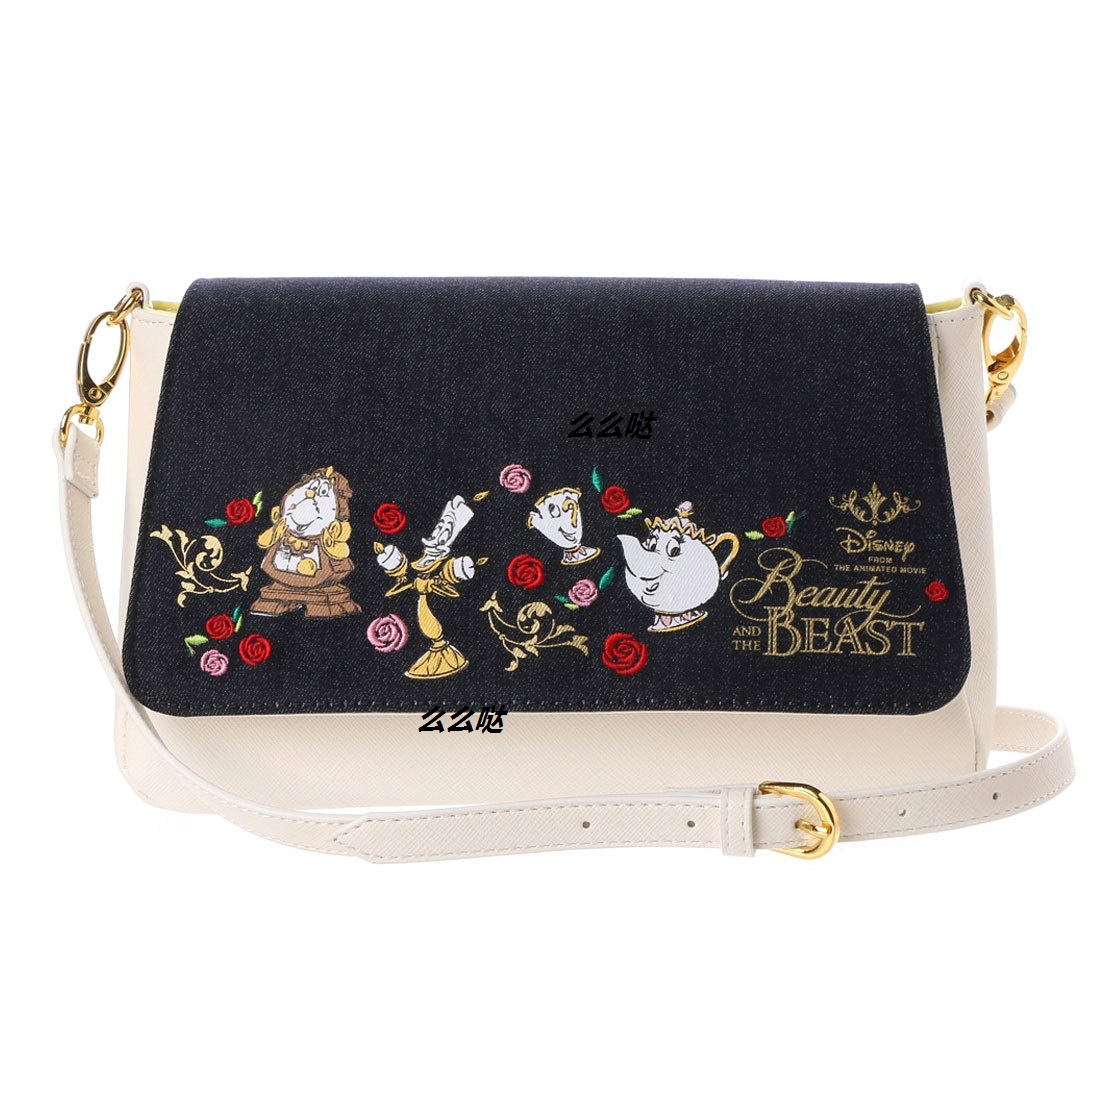 New Fashion Genuine Beauty And Beast Wallet Belle Princess Handbag Girls Cartoon Shoulder Bag For Girls